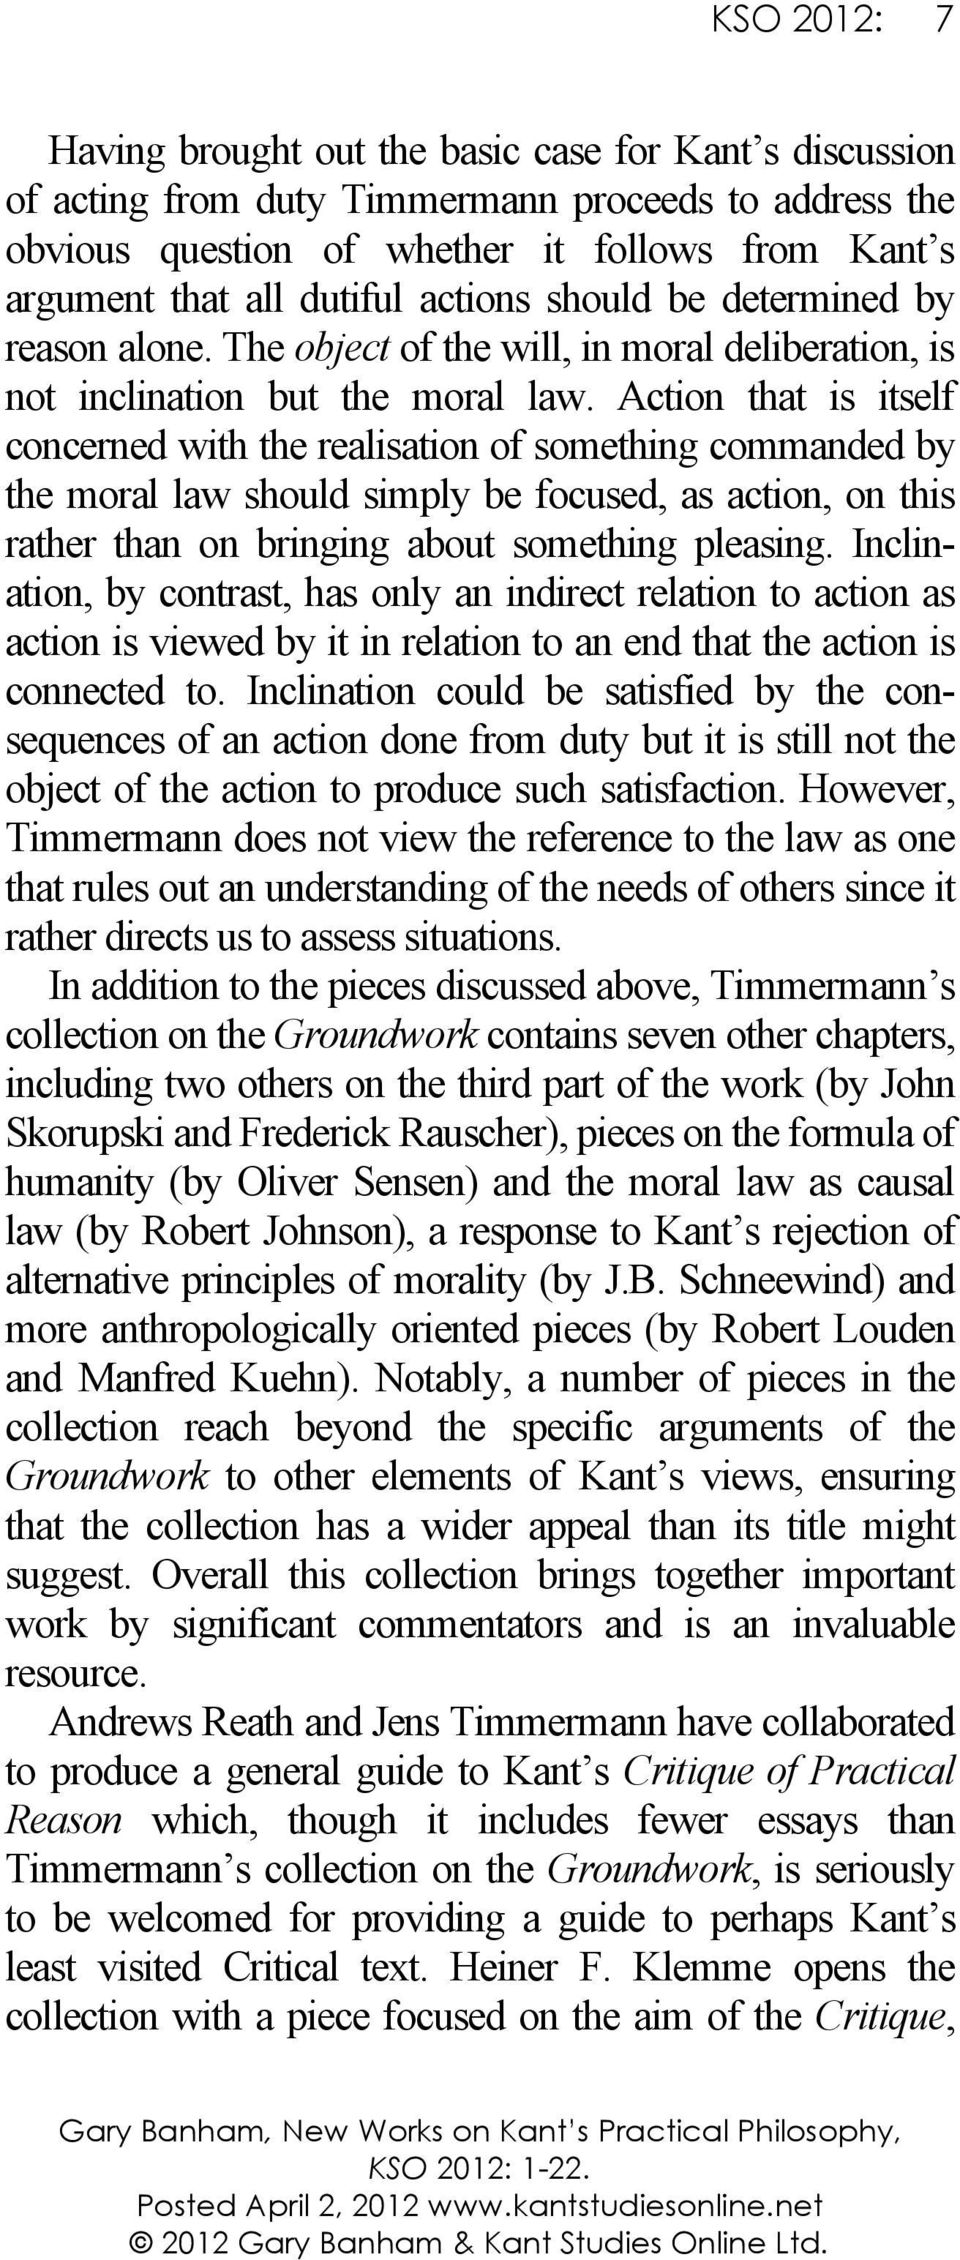 """something on kant essay Themes of the essay in some detail, i argue that, read in context, kant's call to """" think  enlightenment kant defined and urged in his famous essay is something ."""